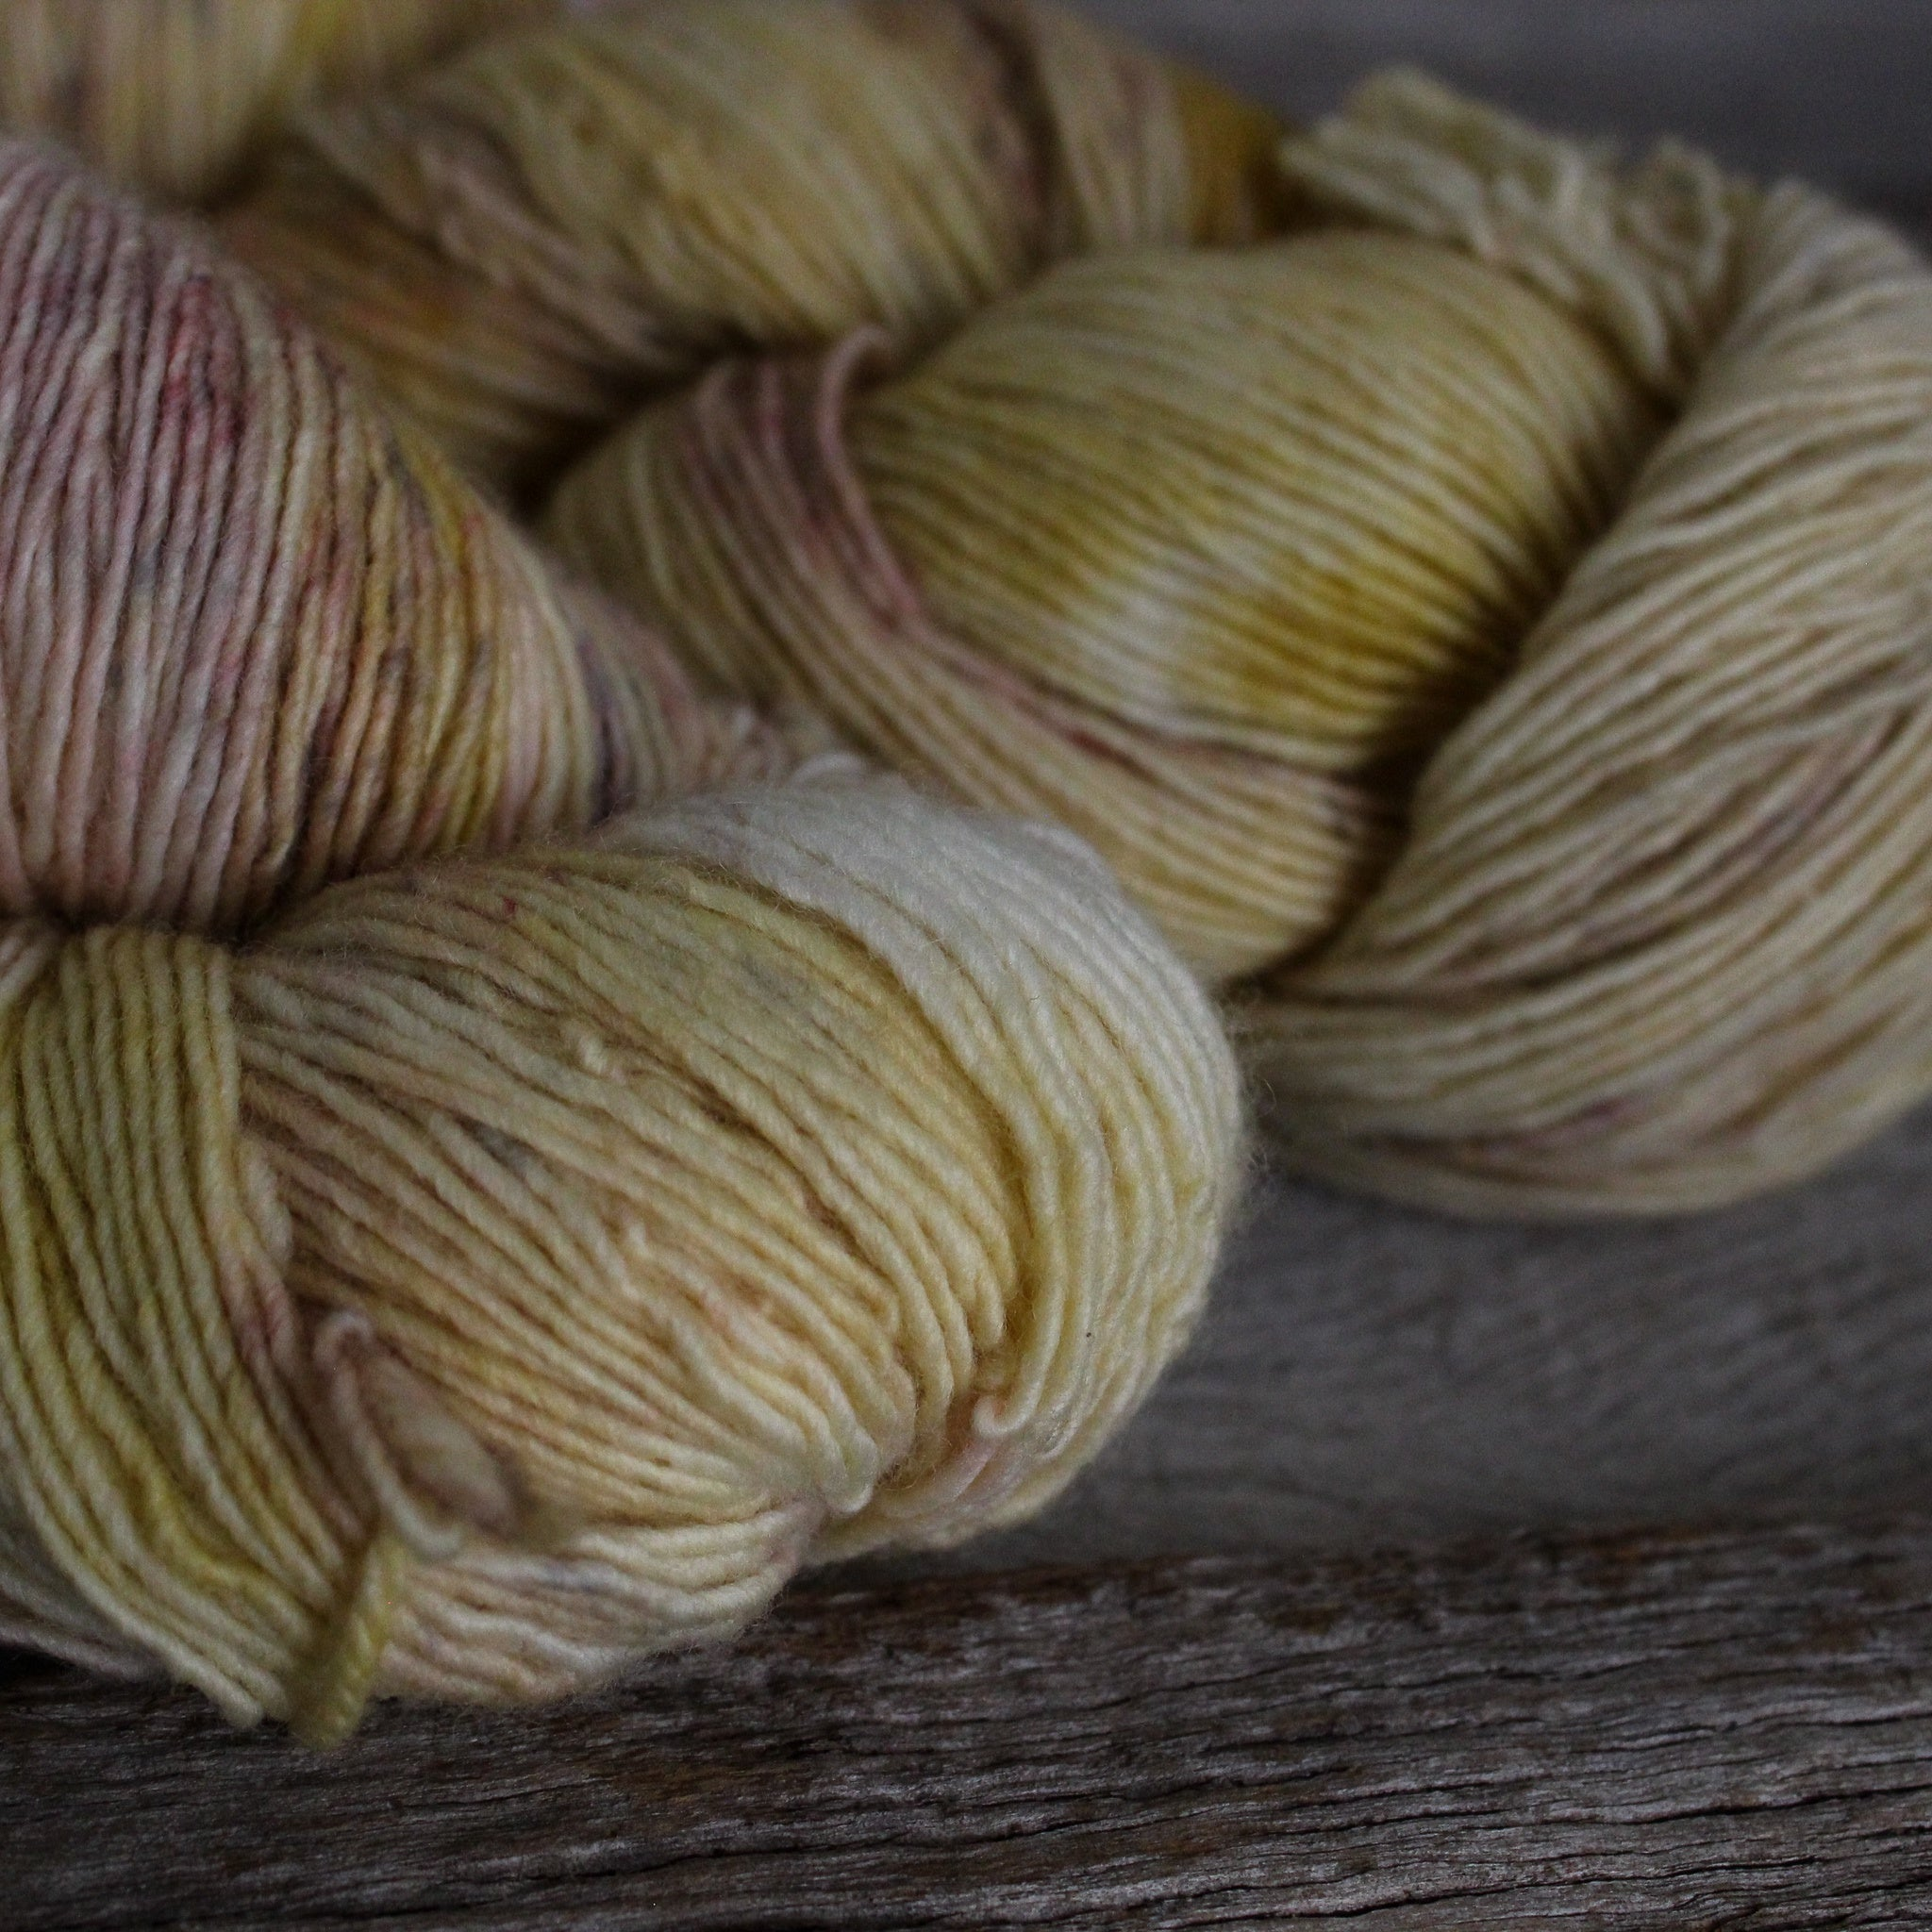 Yarn : Hand-dyed Merino 'Fields of Barley'